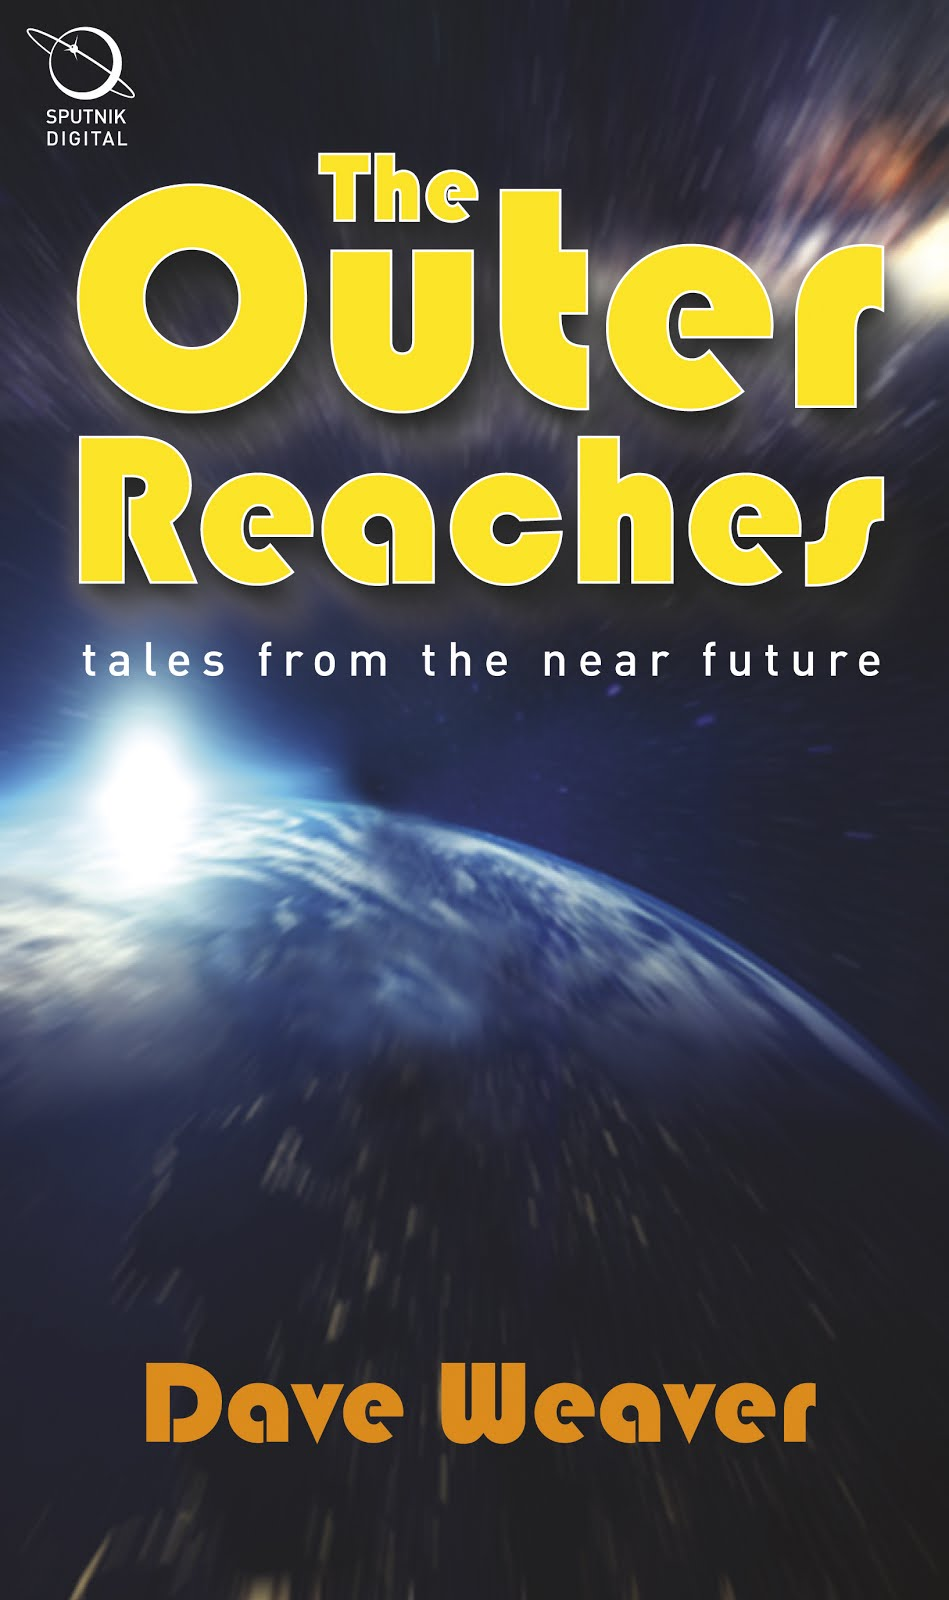 the outer reaches (sp from sputnik digital)